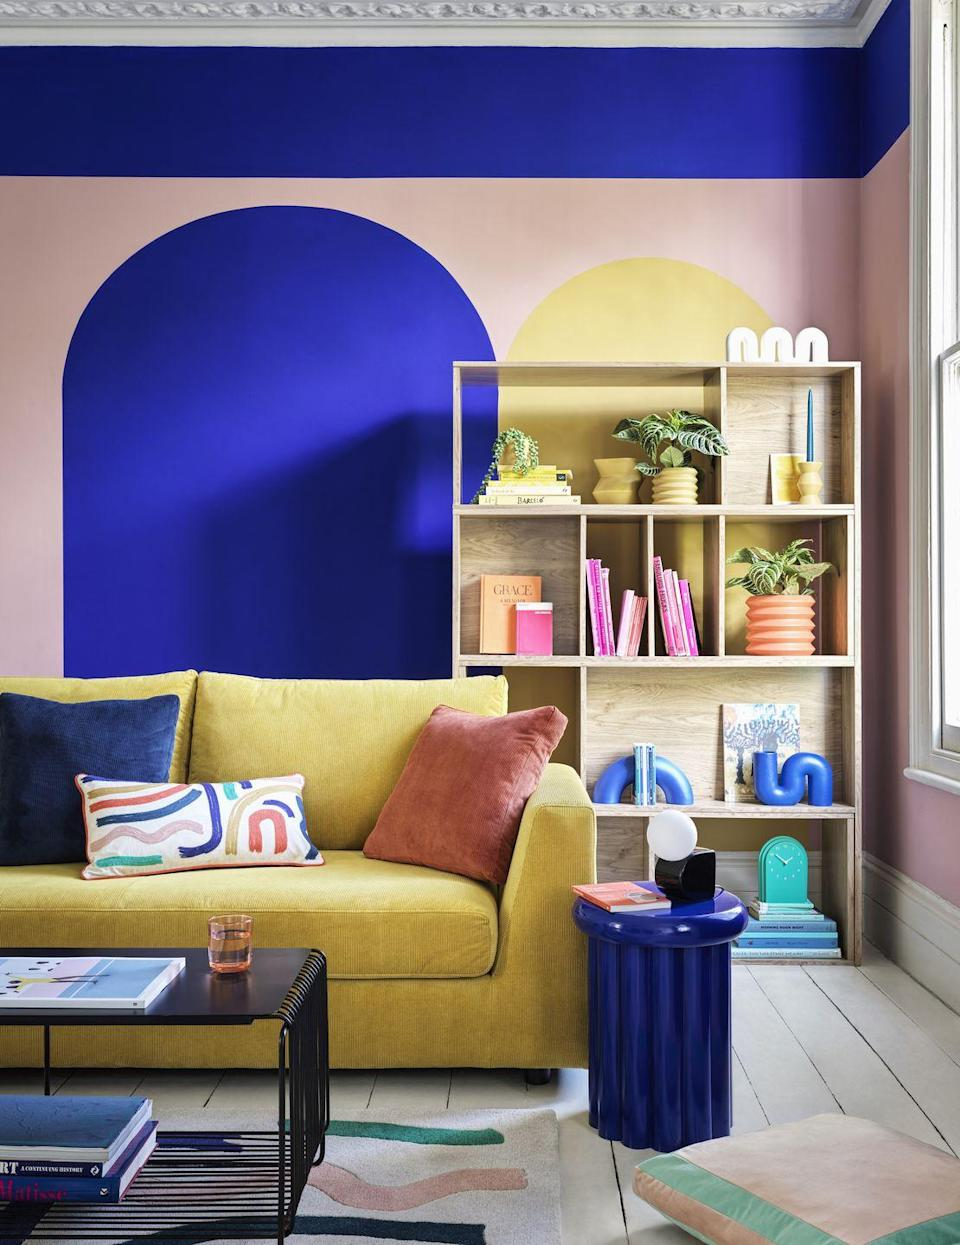 """<p>Influenced by architectural forms, the Studio trend is packed with an energising block colour palette and utilitarian feel. Modern and practical, shoppers can pick up clever storage solutions, large planters, book shelves, table lamps and bright clocks, too. </p><p>'Colour plays such an important part in our homes as it allows us to create not only style but increase our mood, our emotions and our feelings,' explains Andrew Tanner, Design Manager.</p><p>'After spending more time indoors than ever before we have turned<br>to using uplifting palettes, bold and vibrant hues that evoke the senses.'</p><p><strong>Follow House Beautiful on <a href=""""https://www.instagram.com/housebeautifuluk/"""" rel=""""nofollow noopener"""" target=""""_blank"""" data-ylk=""""slk:Instagram"""" class=""""link rapid-noclick-resp"""">Instagram</a>.</strong></p>"""